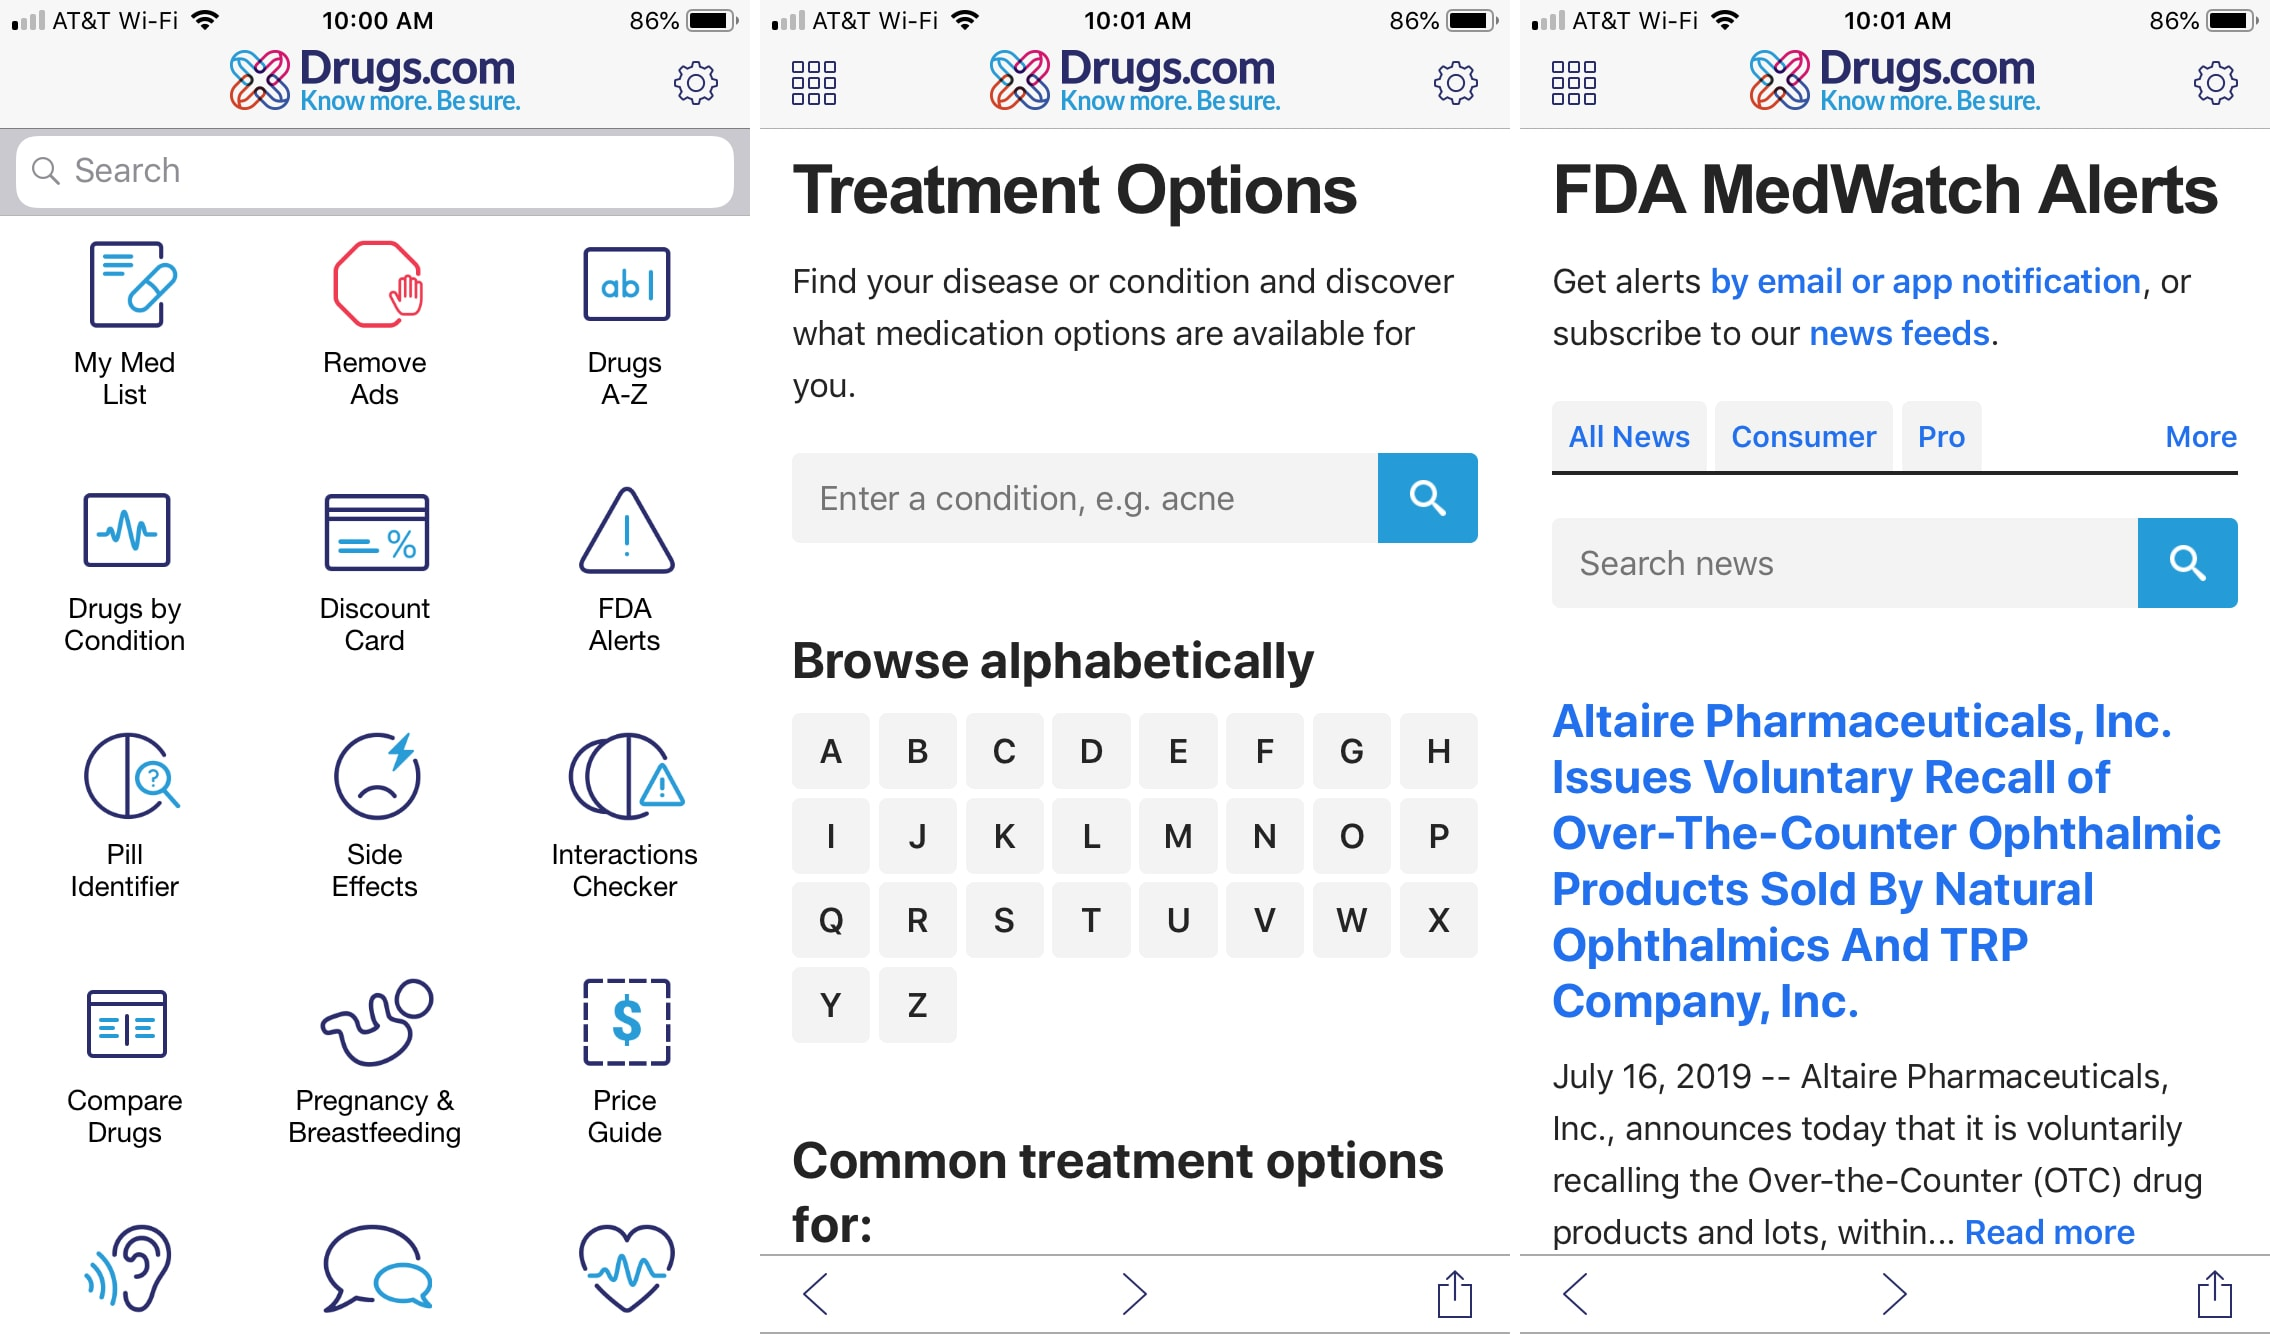 DrugsDotCom app iPhone